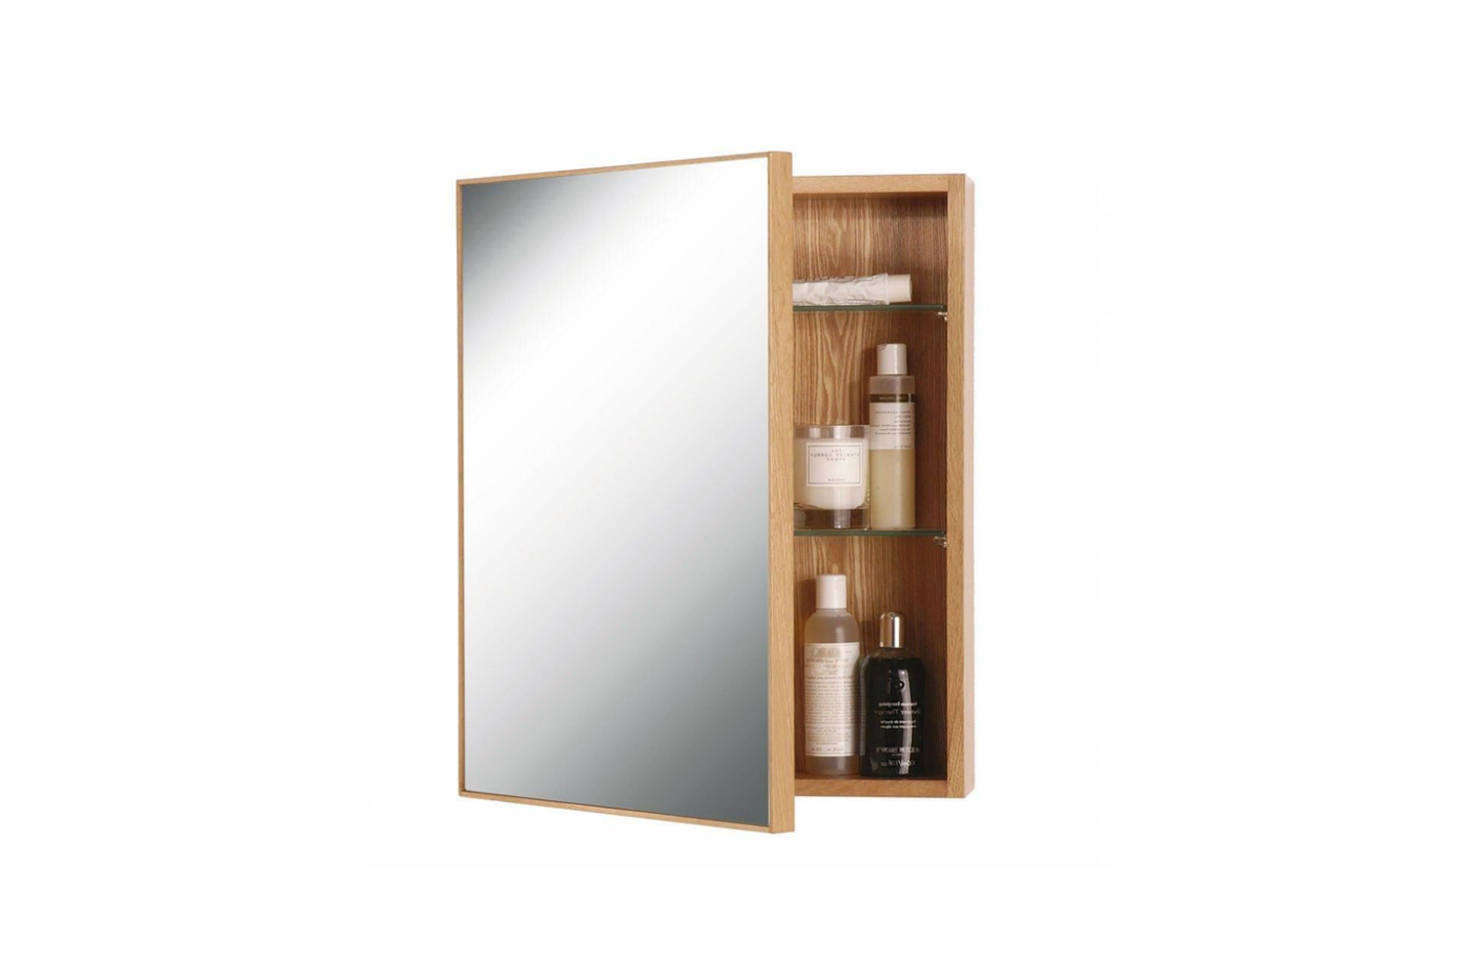 The medicine cabinet in the bathroom is the Slimline 550 Cabinet designed by Lincoln Rivers for Wireworks; £196 at TwentyTwentyOne in the UK. You can also find it in the US for $273.99 at Wayfair.